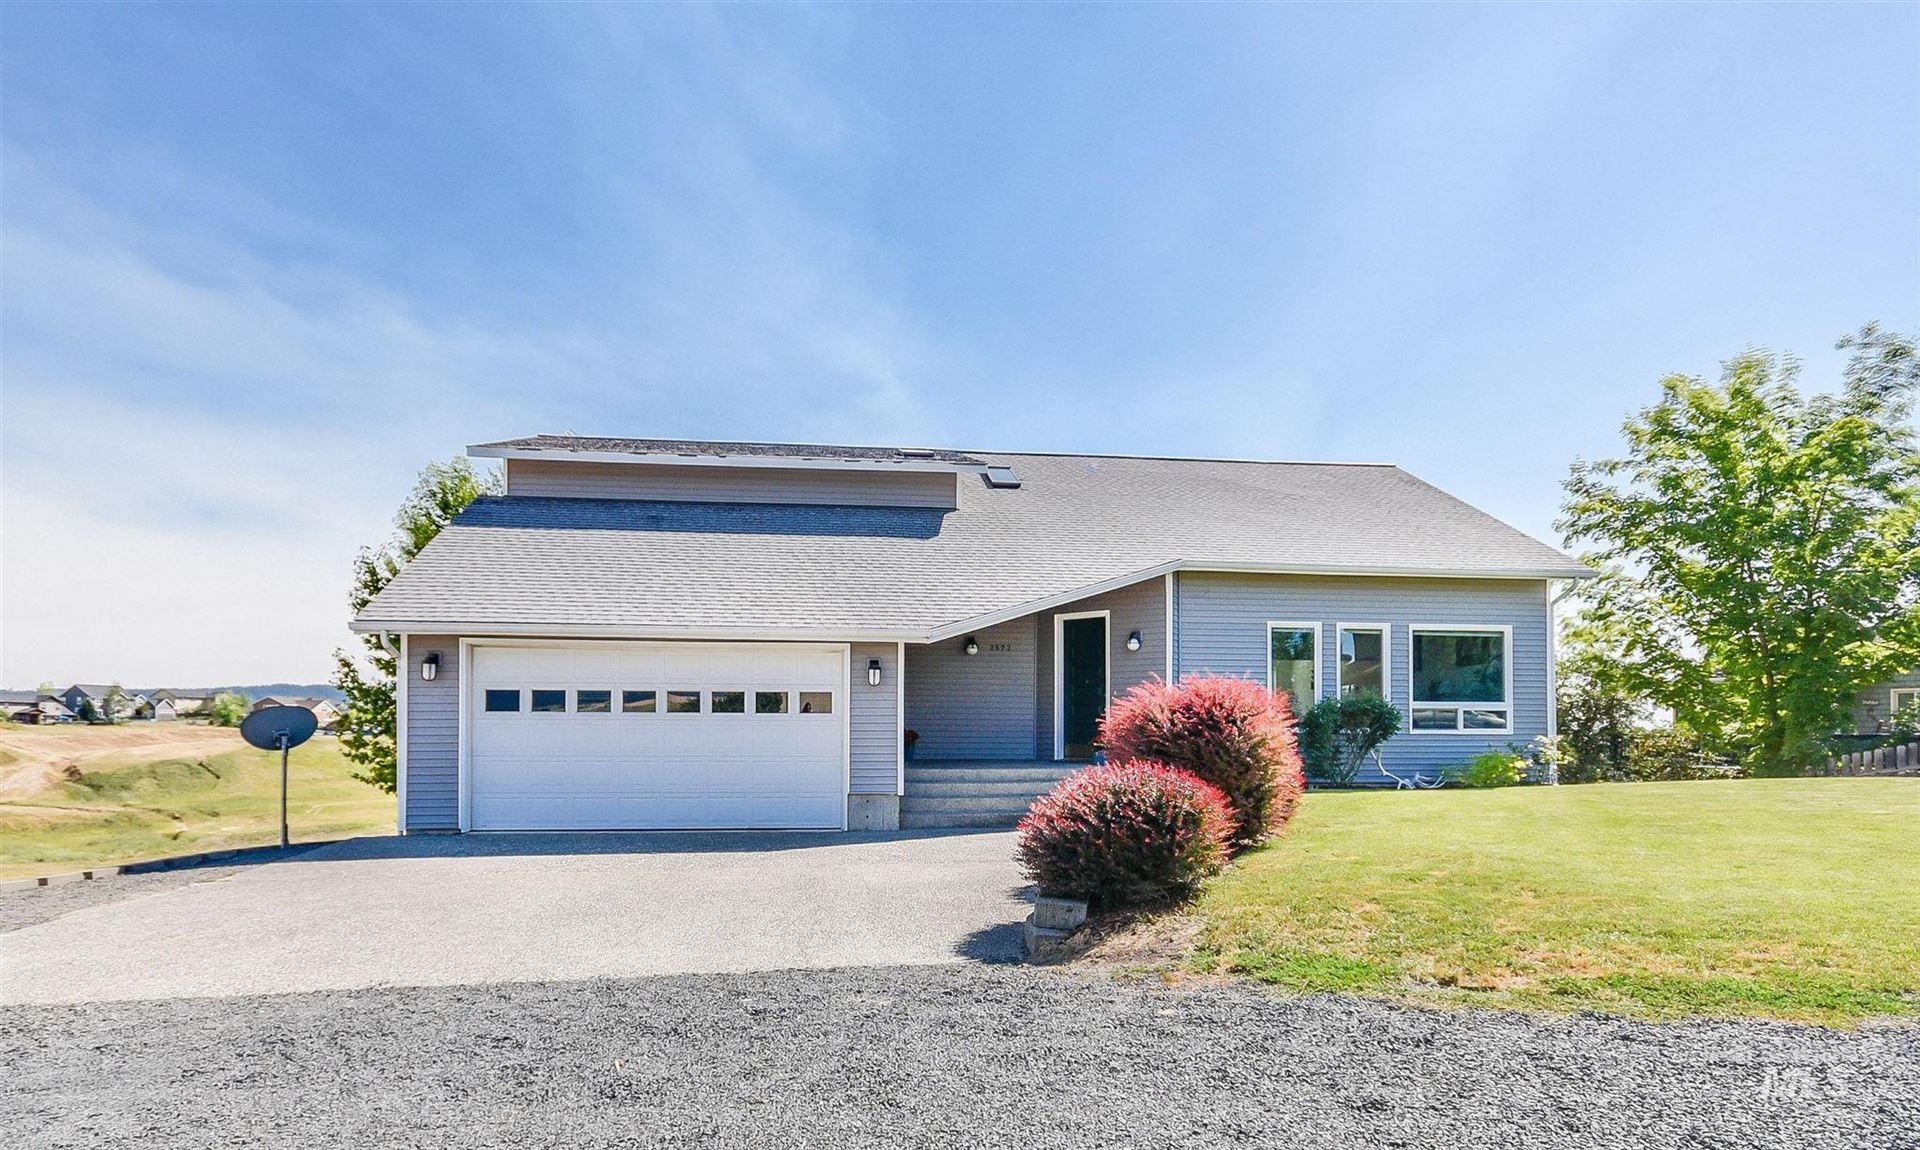 Photo of 2573 Moser, Moscow, ID 83843 (MLS # 98811230)